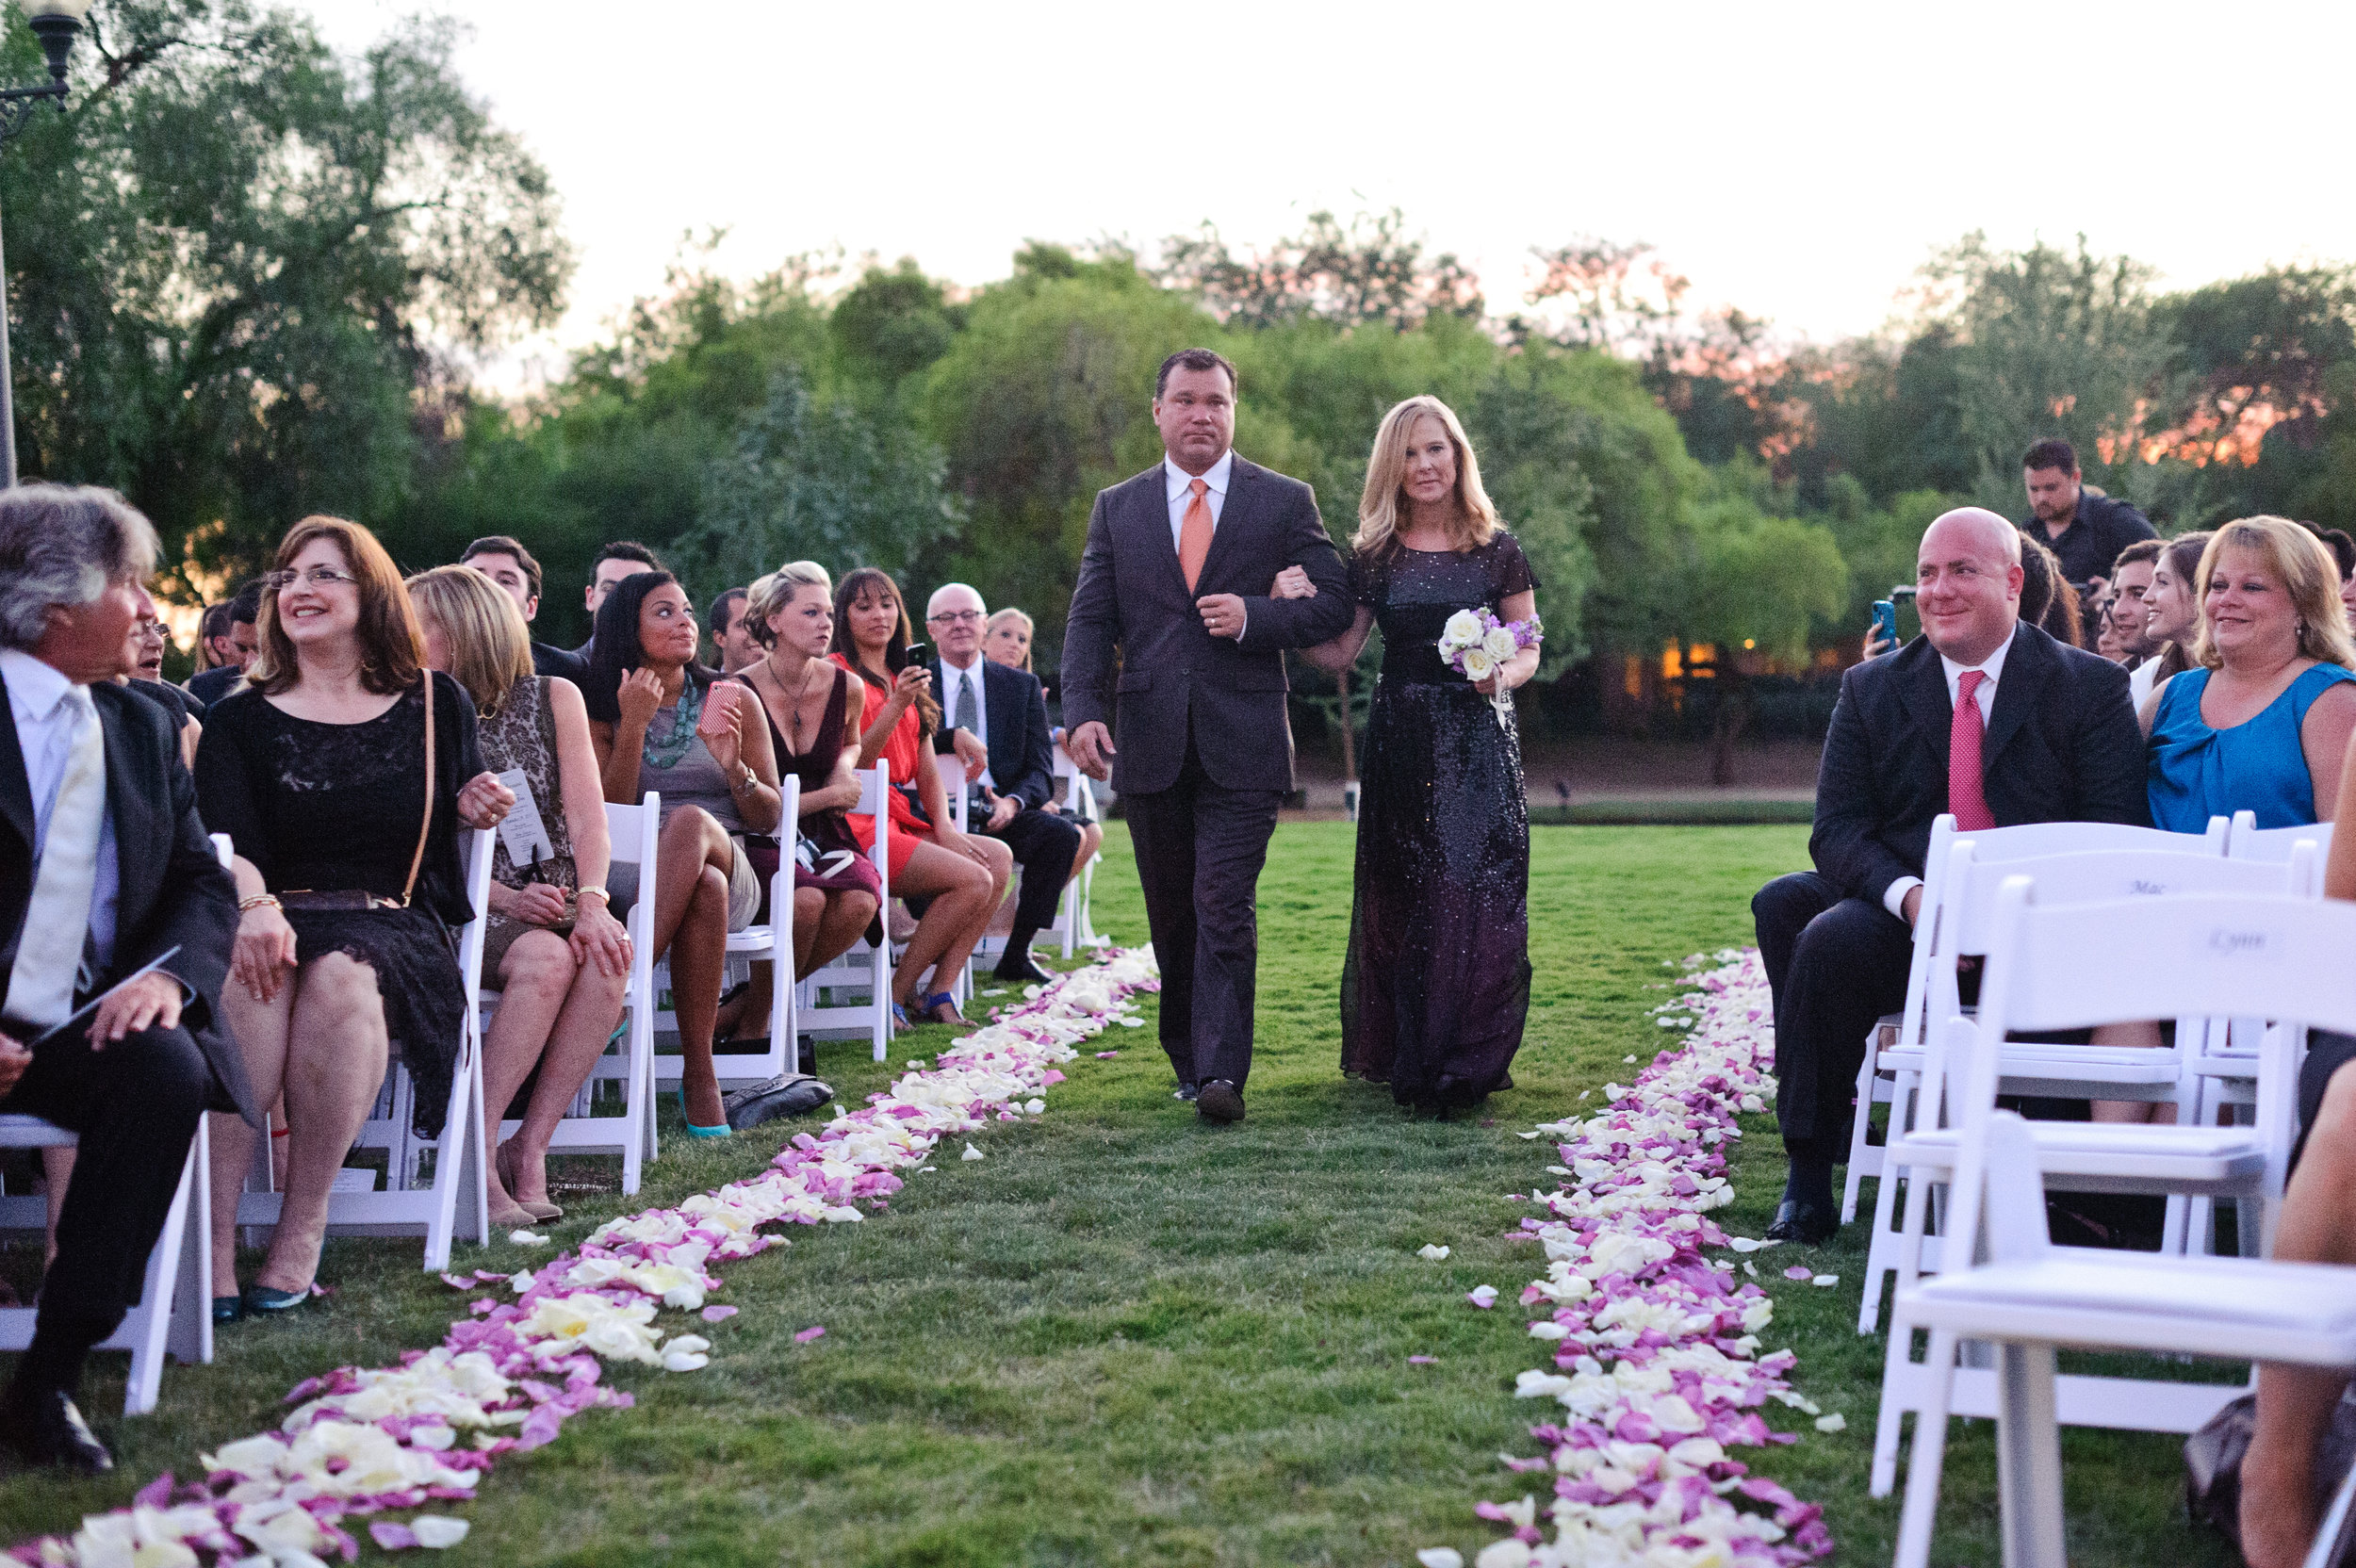 15 bride and groomsmen walking down the aisle spring wedding white wedding chairs purple and white rose petals down the aisle .JPG